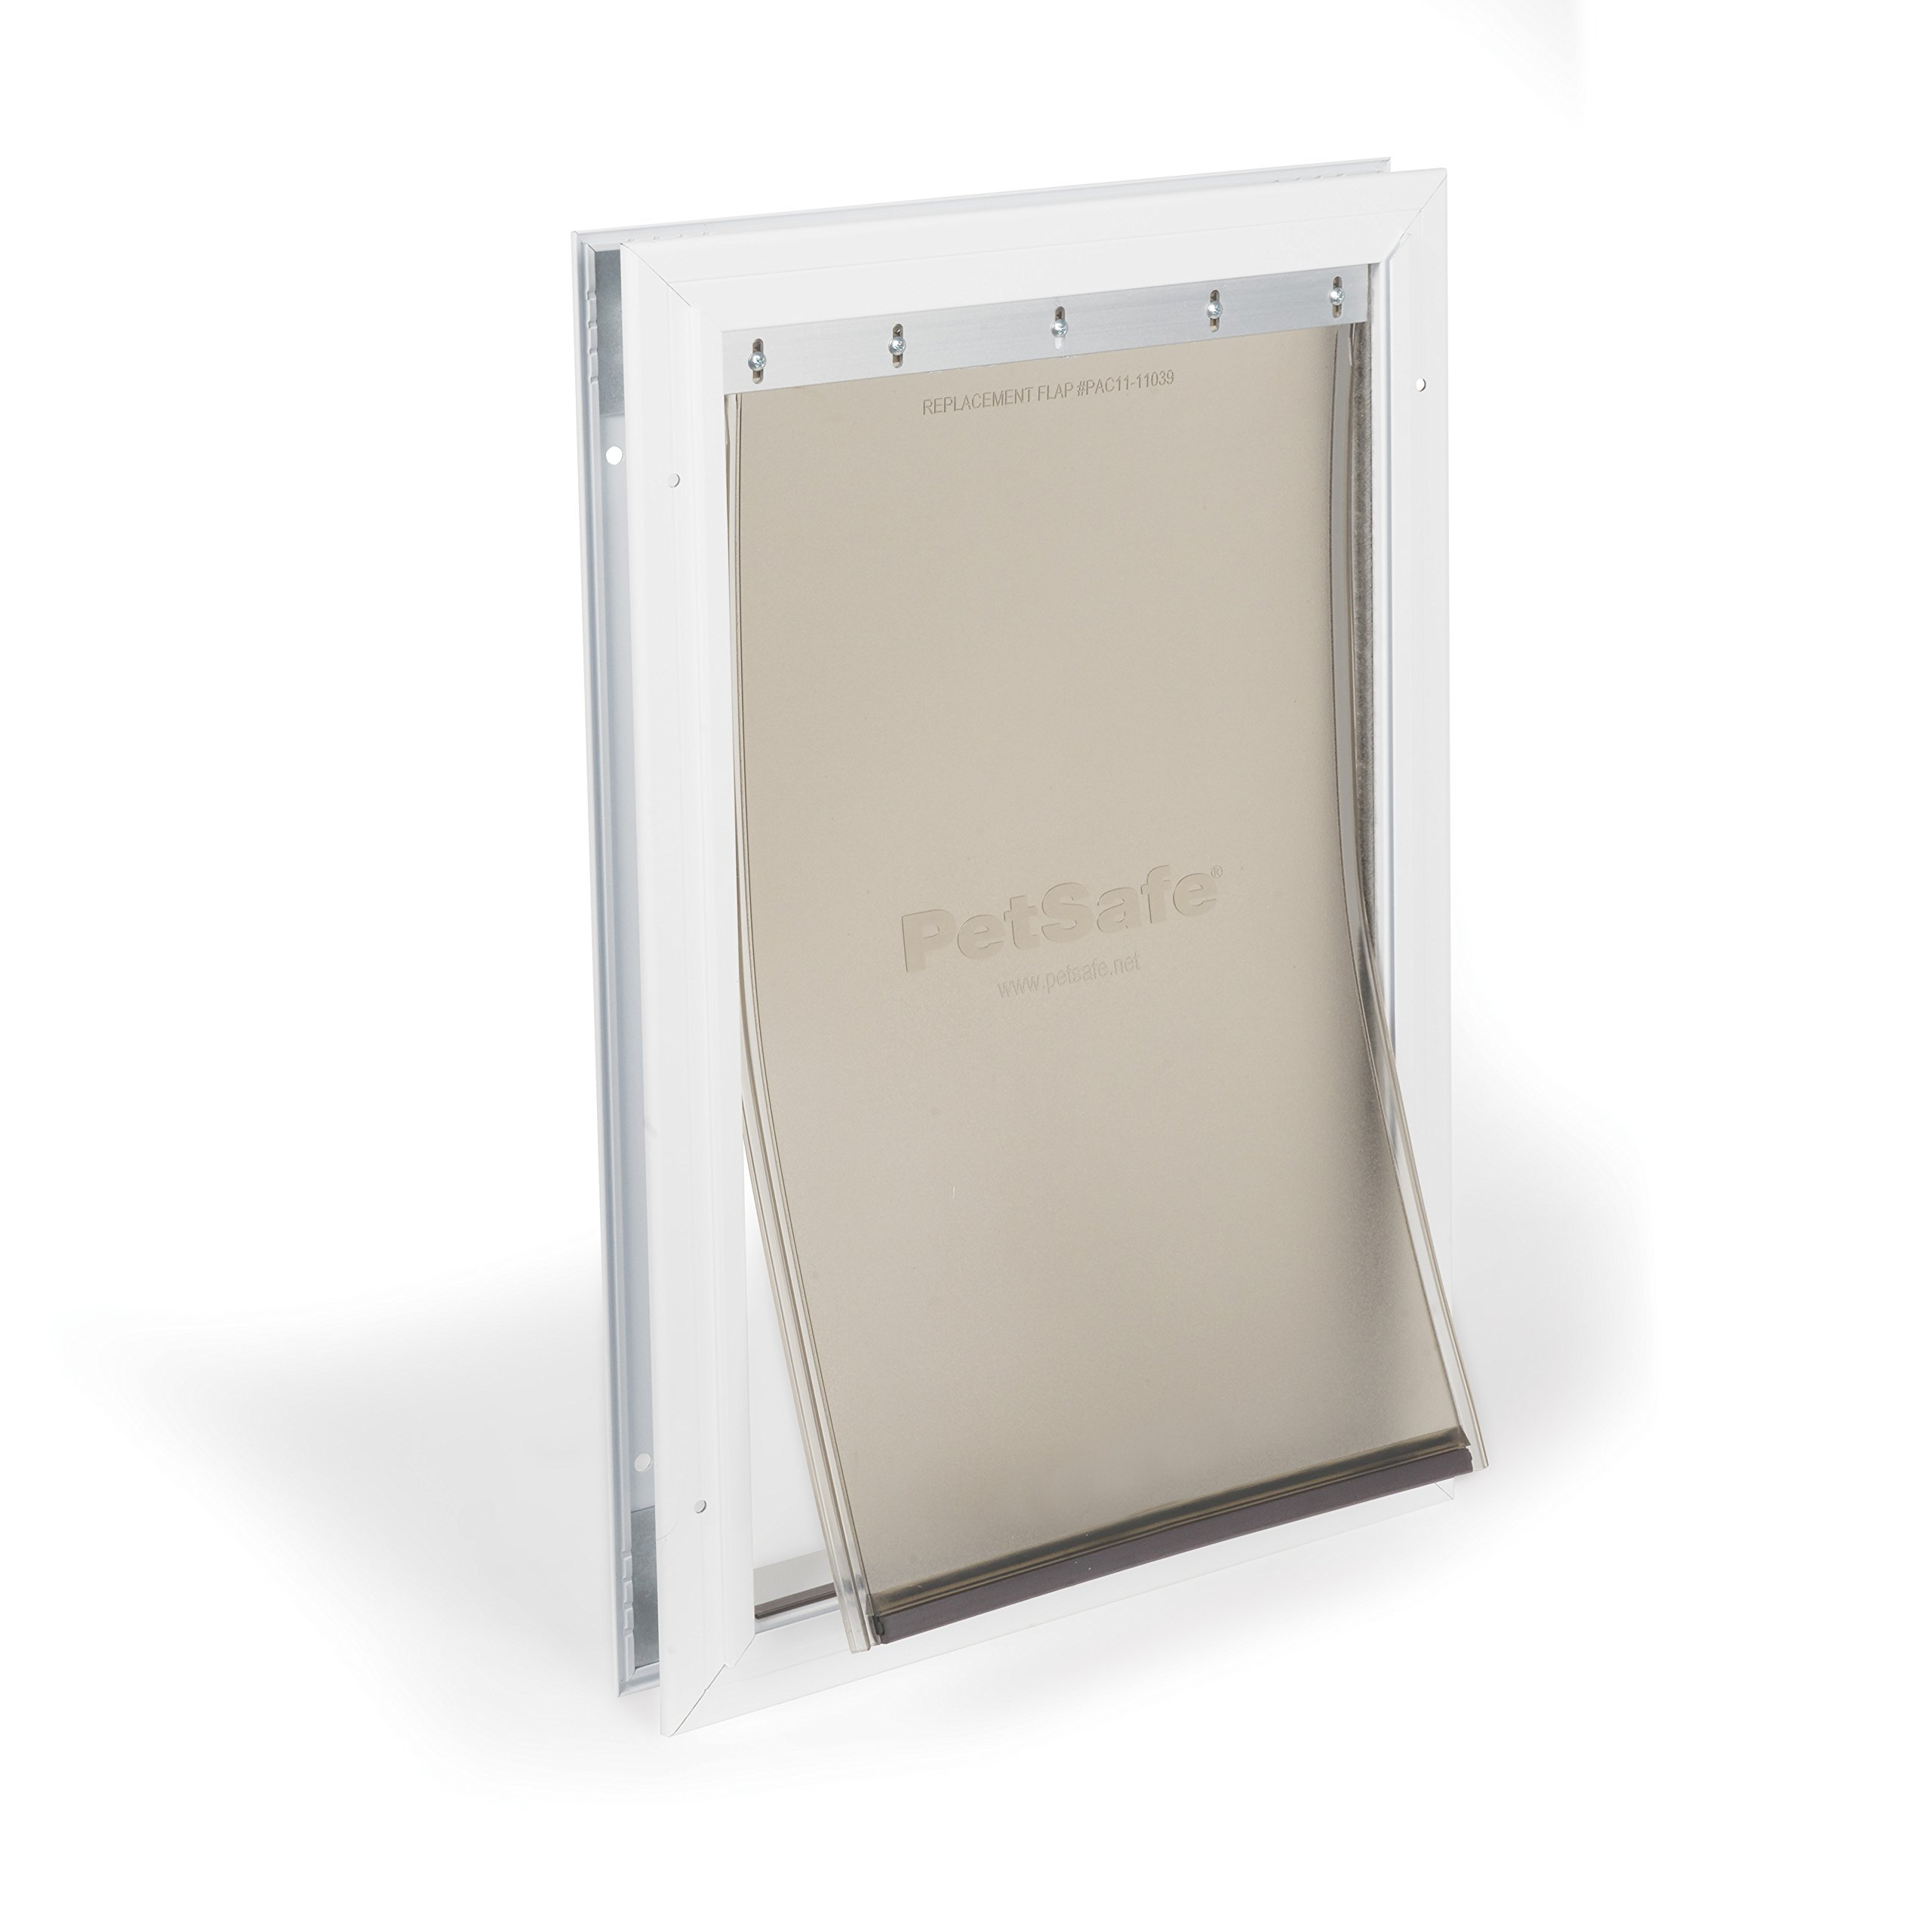 PetSafe Freedom Aluminum Pet Door for Dogs, Large, White, Tinted Vinyl Flap by PetSafe